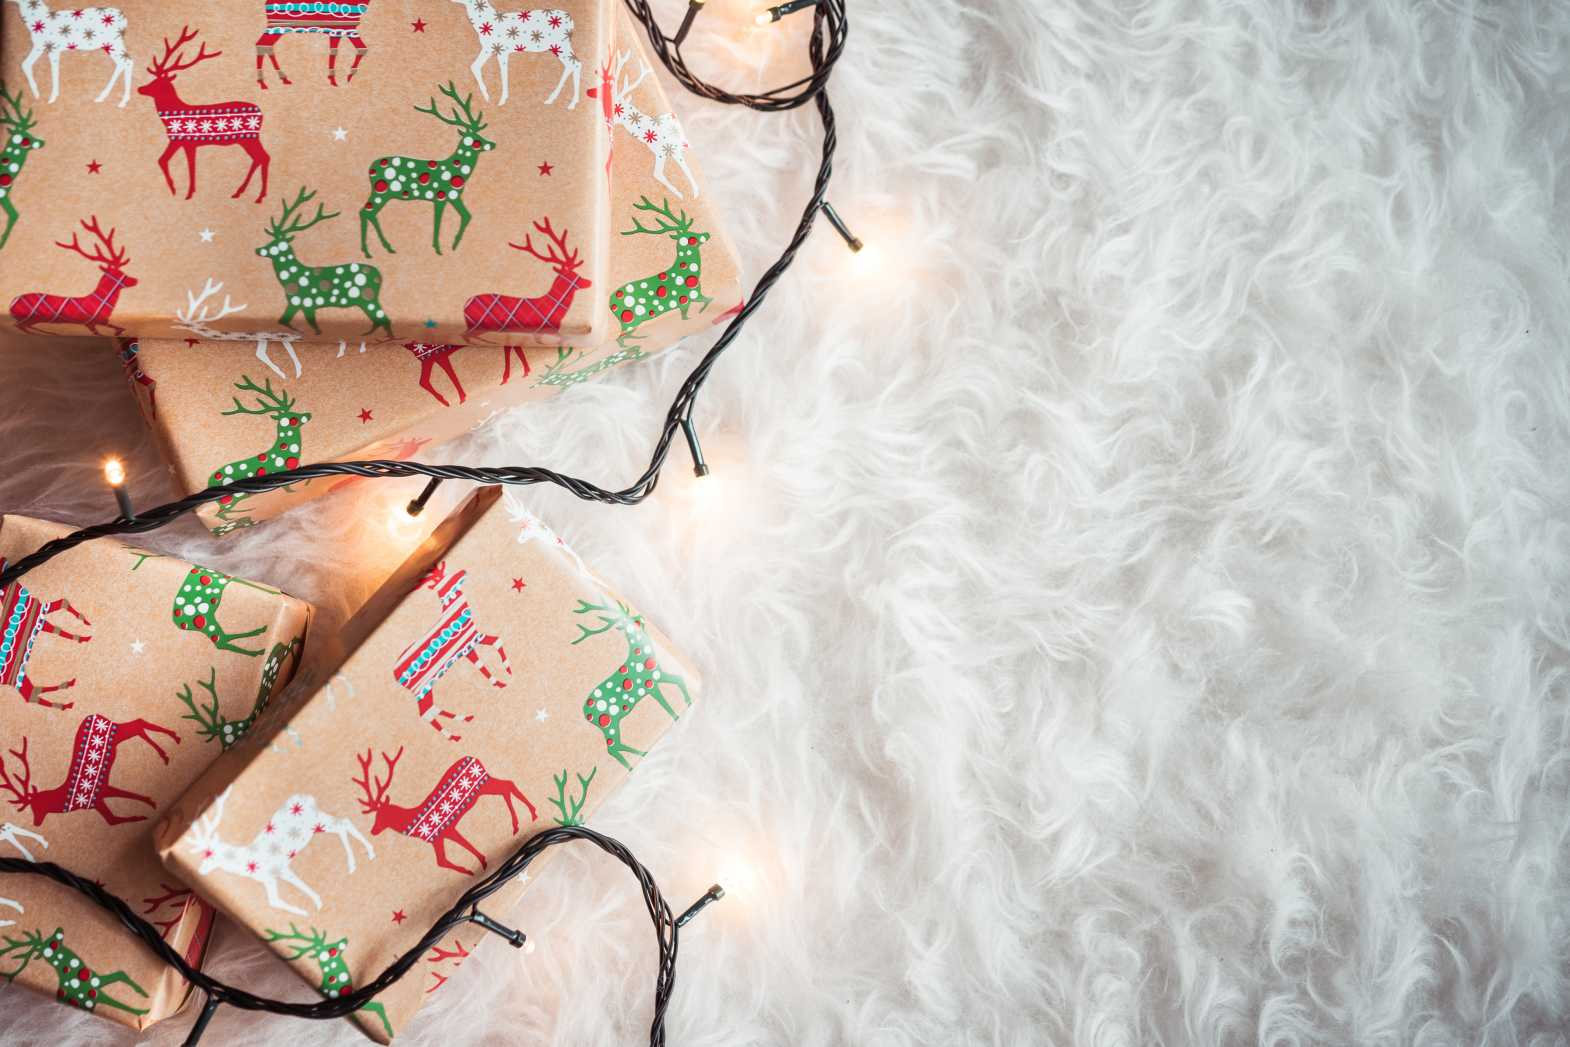 christmas presents and white room for text free hd image picjumbo